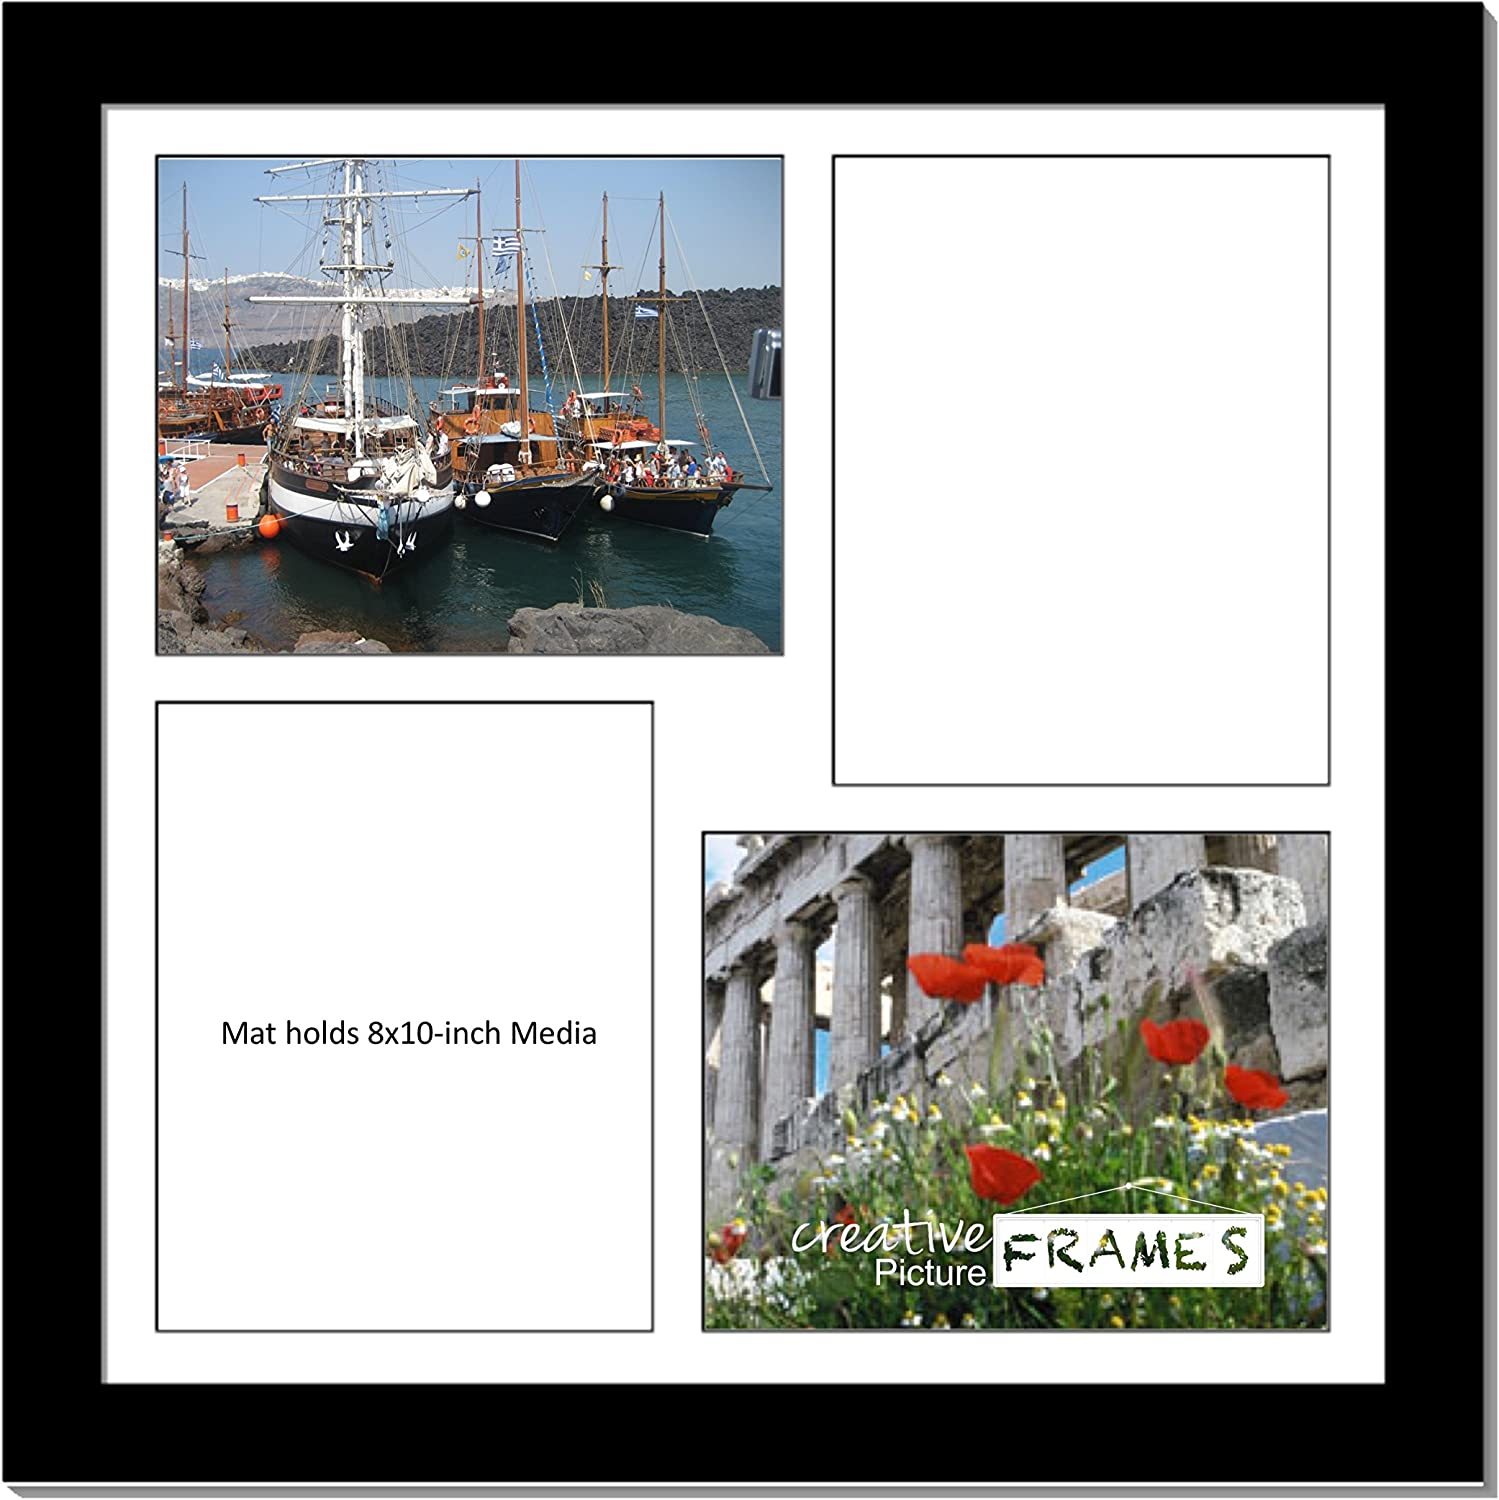 CreativePF [2020bk] Black Picture Frame with 4 Opening White Mat/Black Core Collage to Hold 8x10-inch Media,Includes Installed Sawtooth Hangers